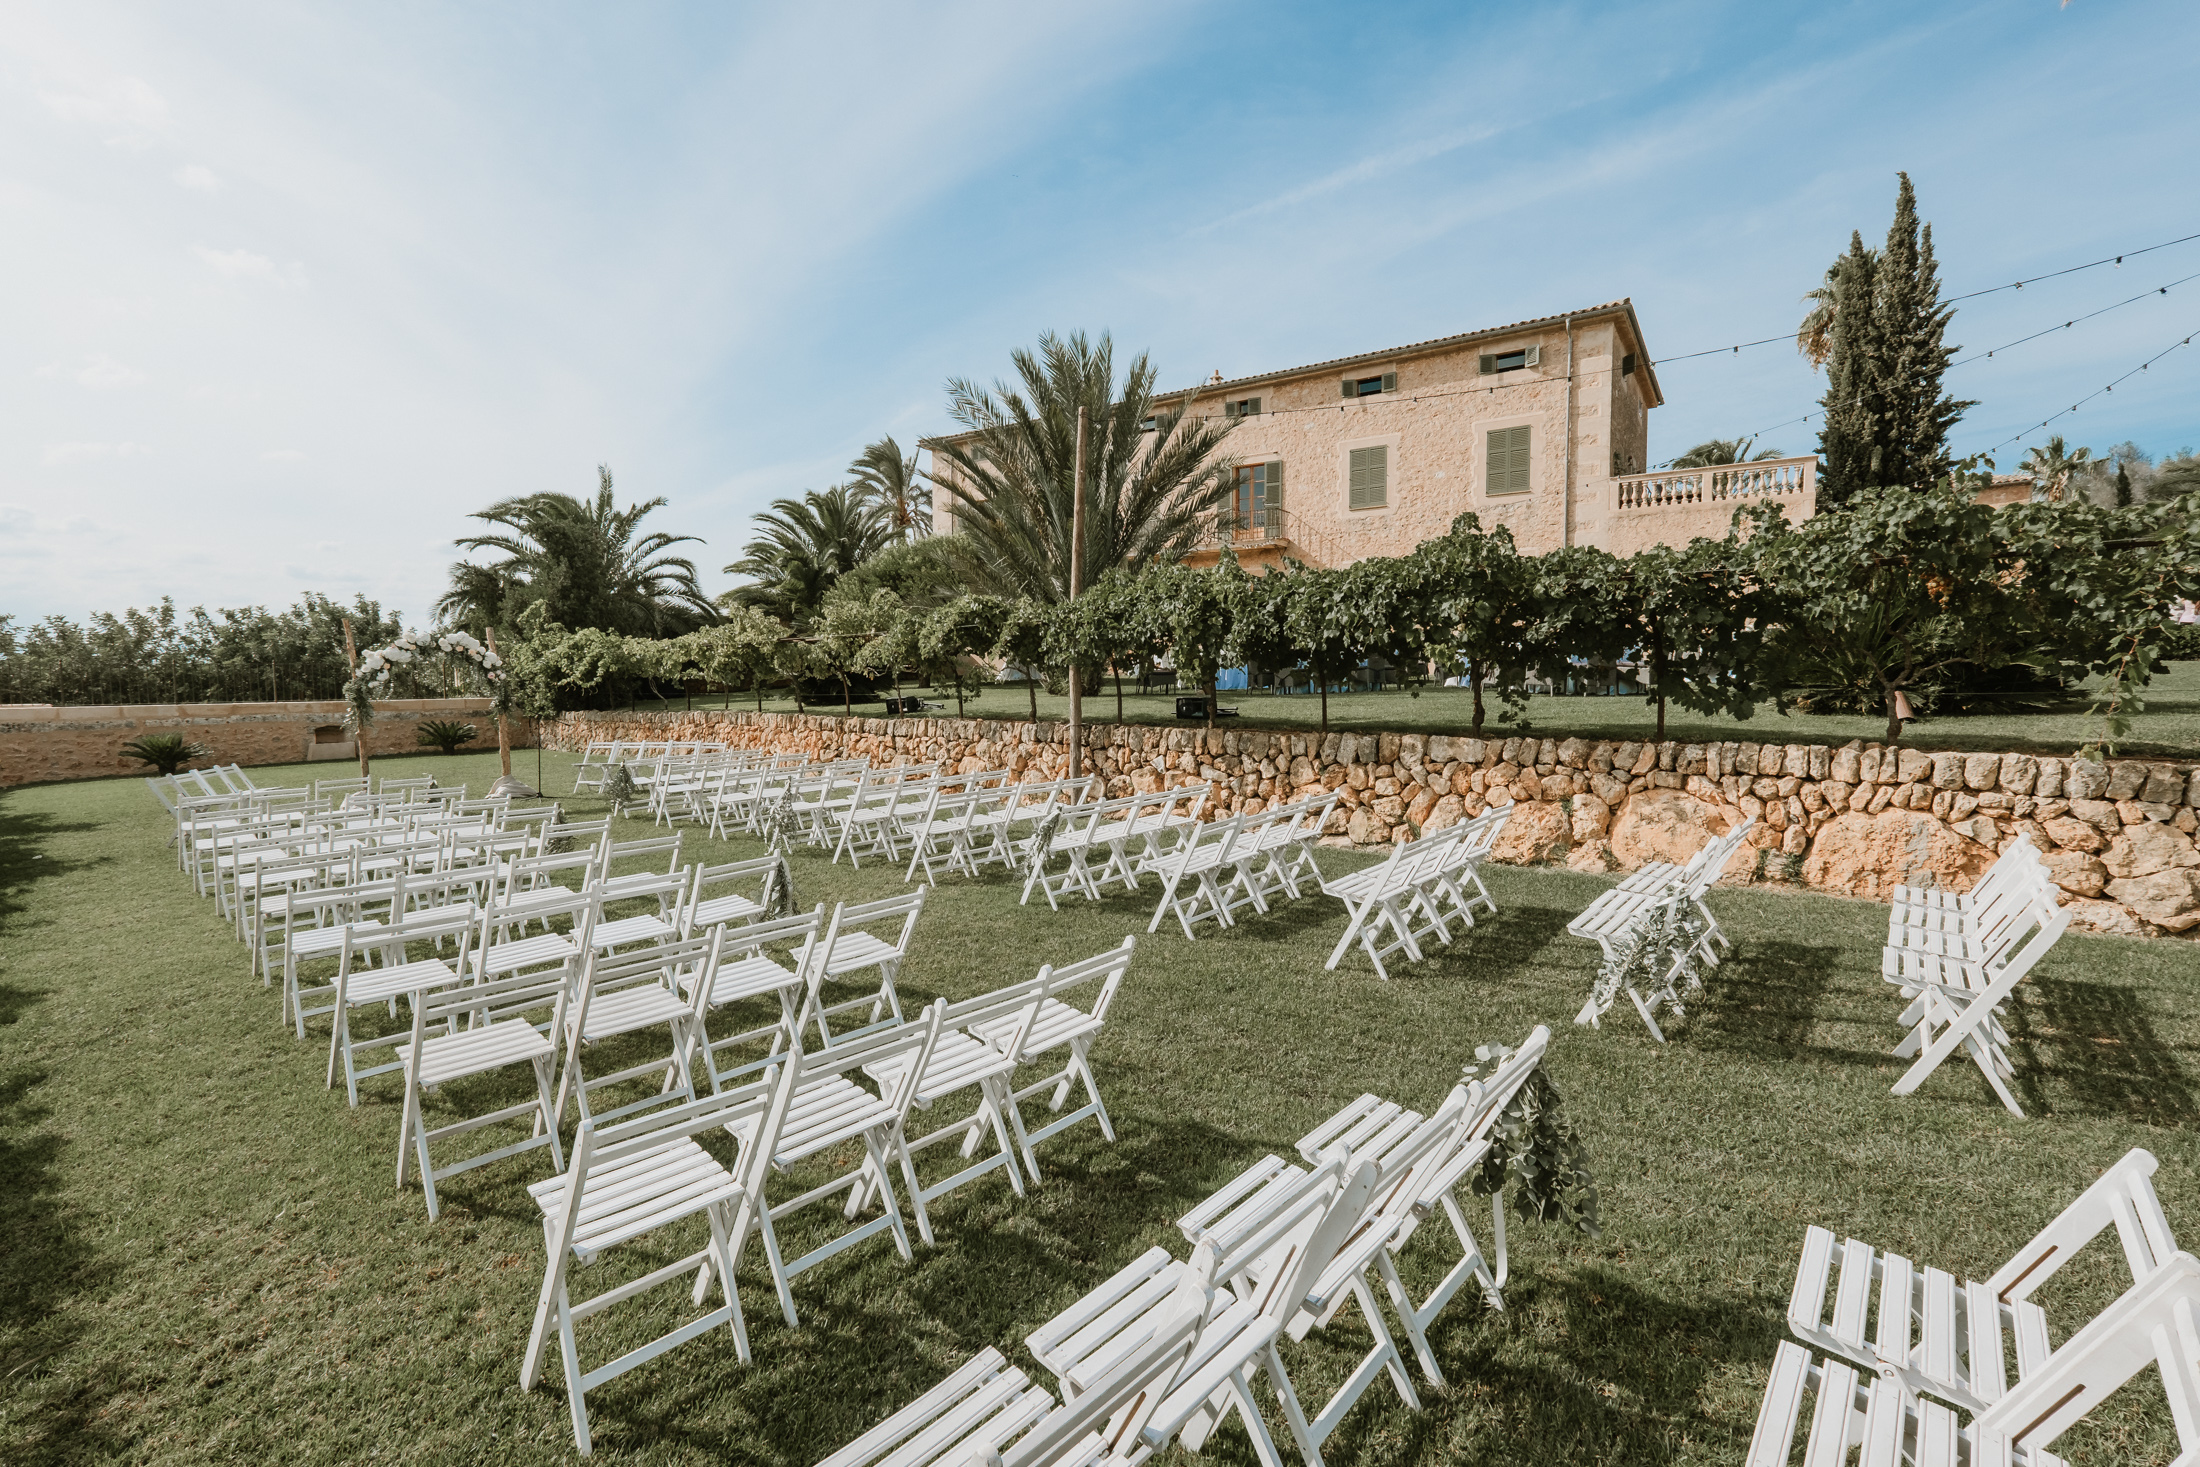 The ceremony set up on the lawns of the Finca - Aimee K Photography